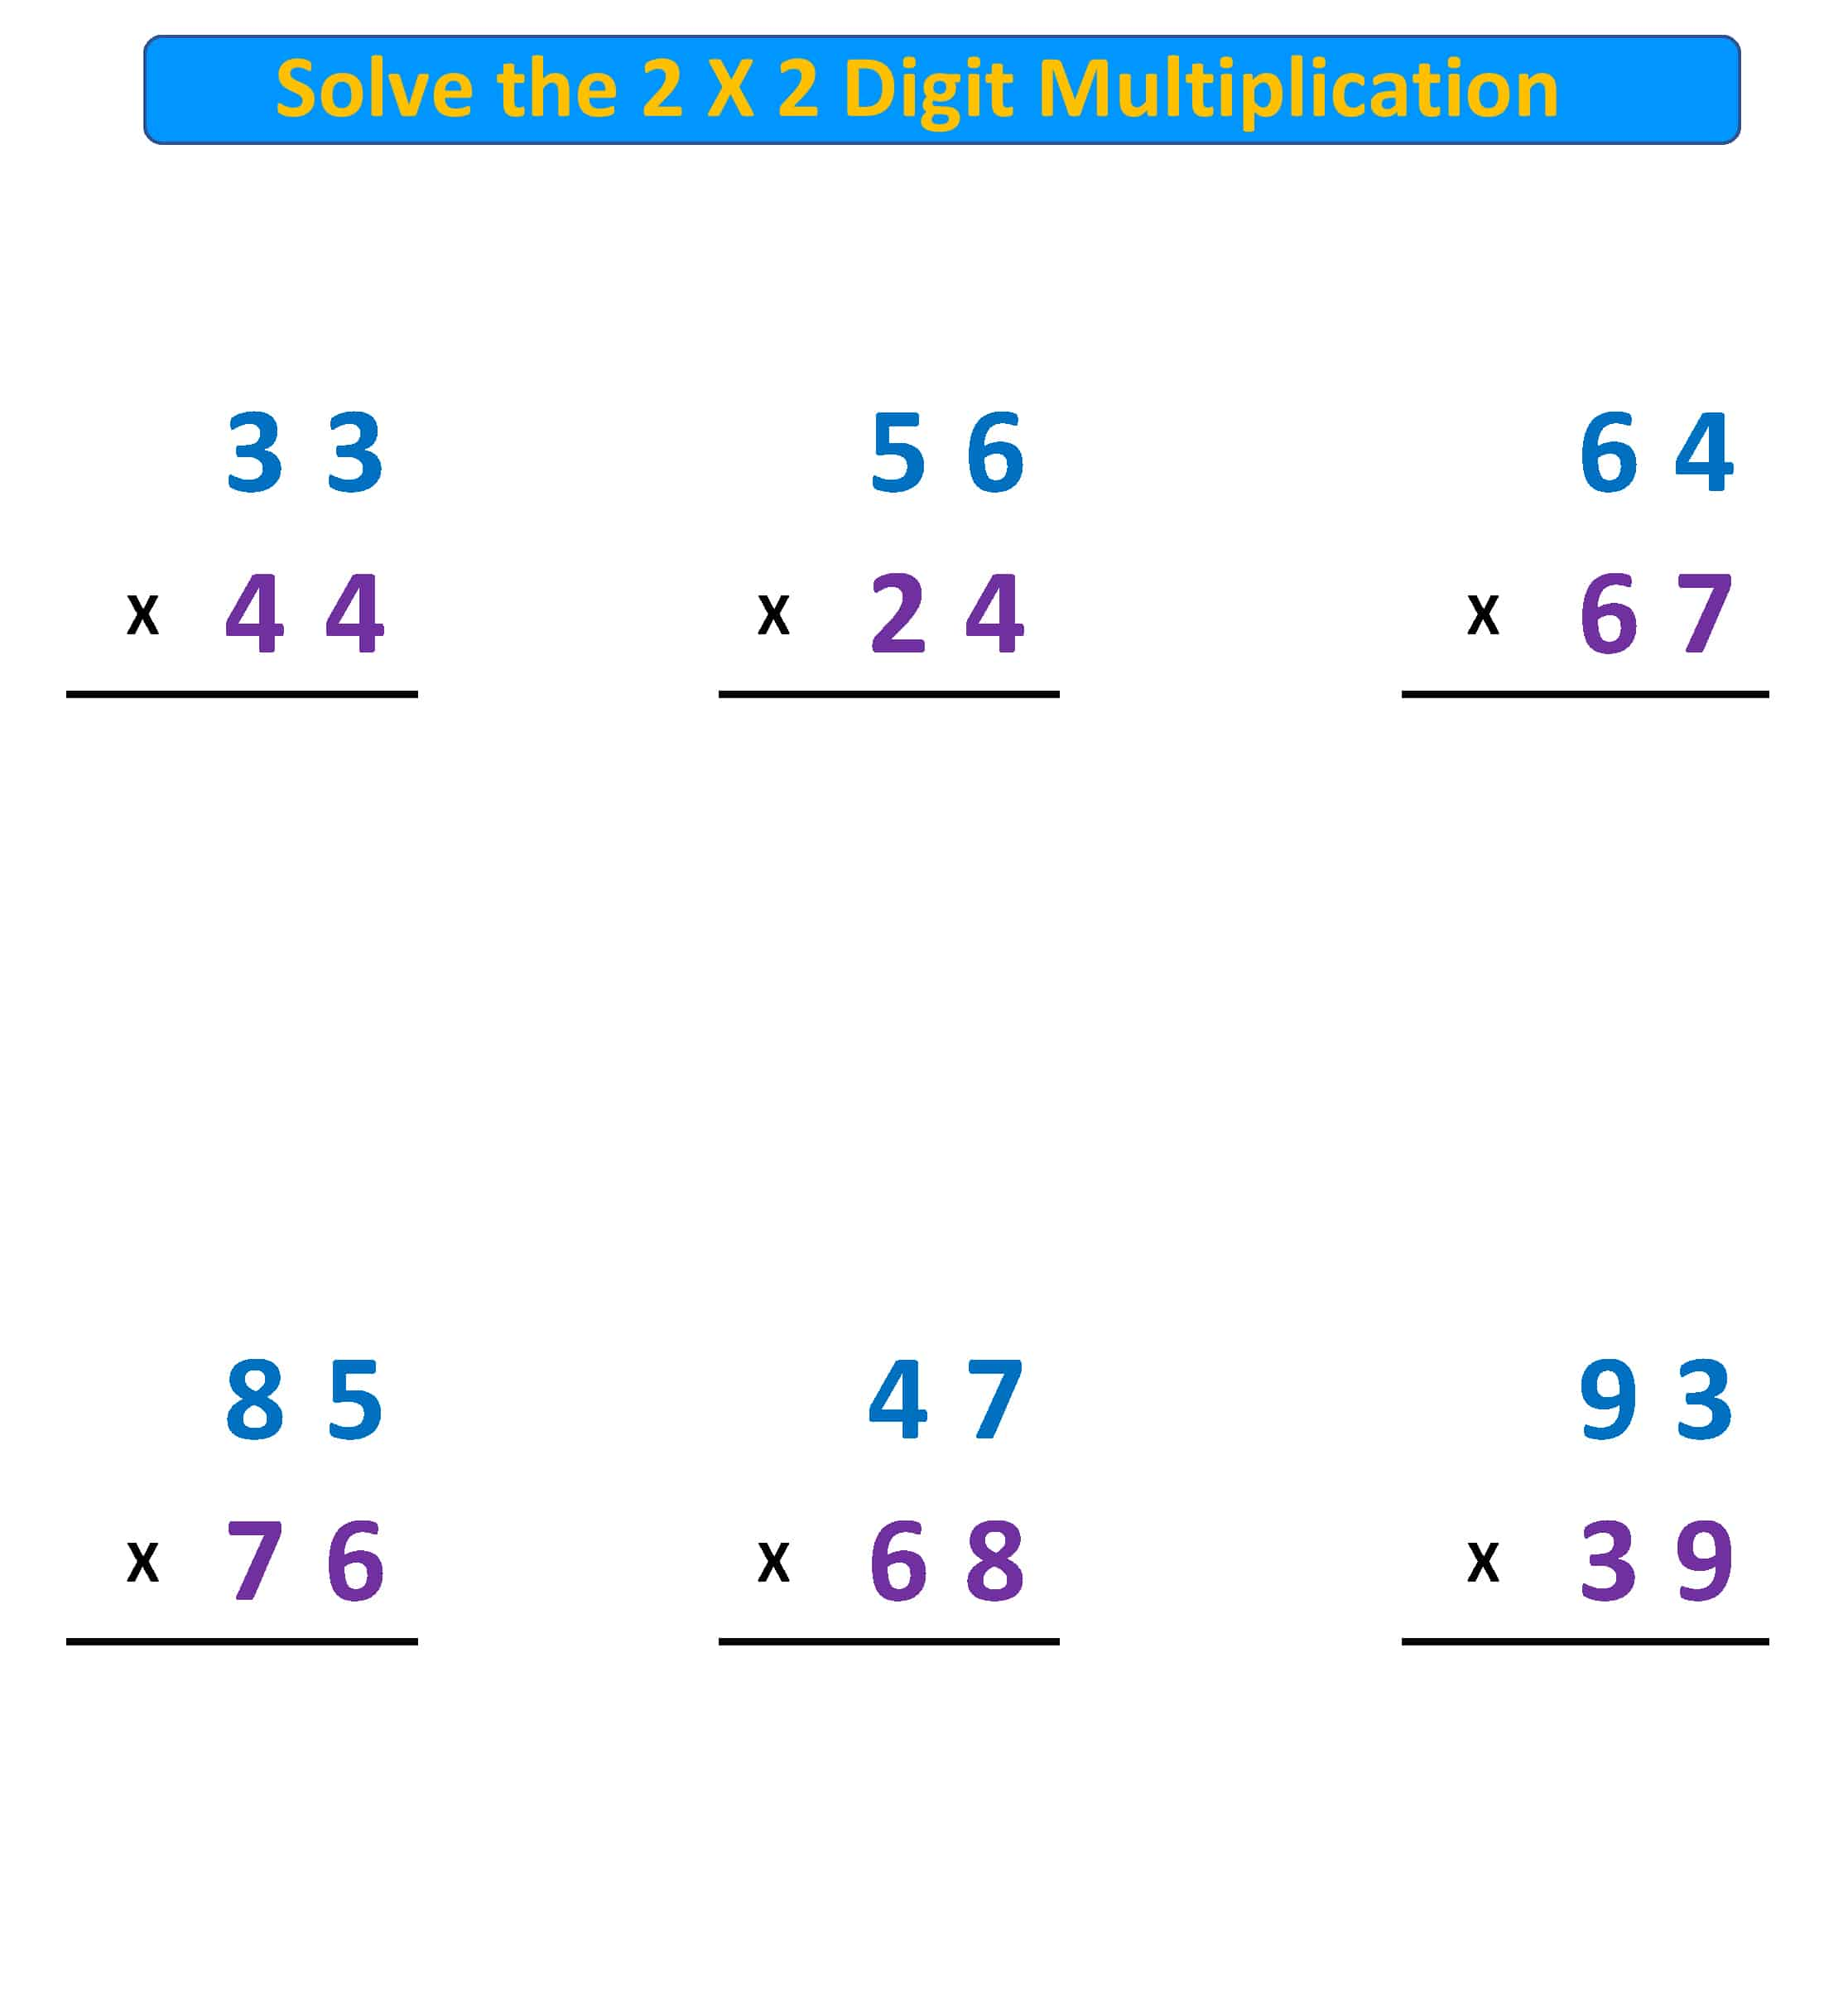 Multiplication Problems 2 X 2 Digit With Regrouping